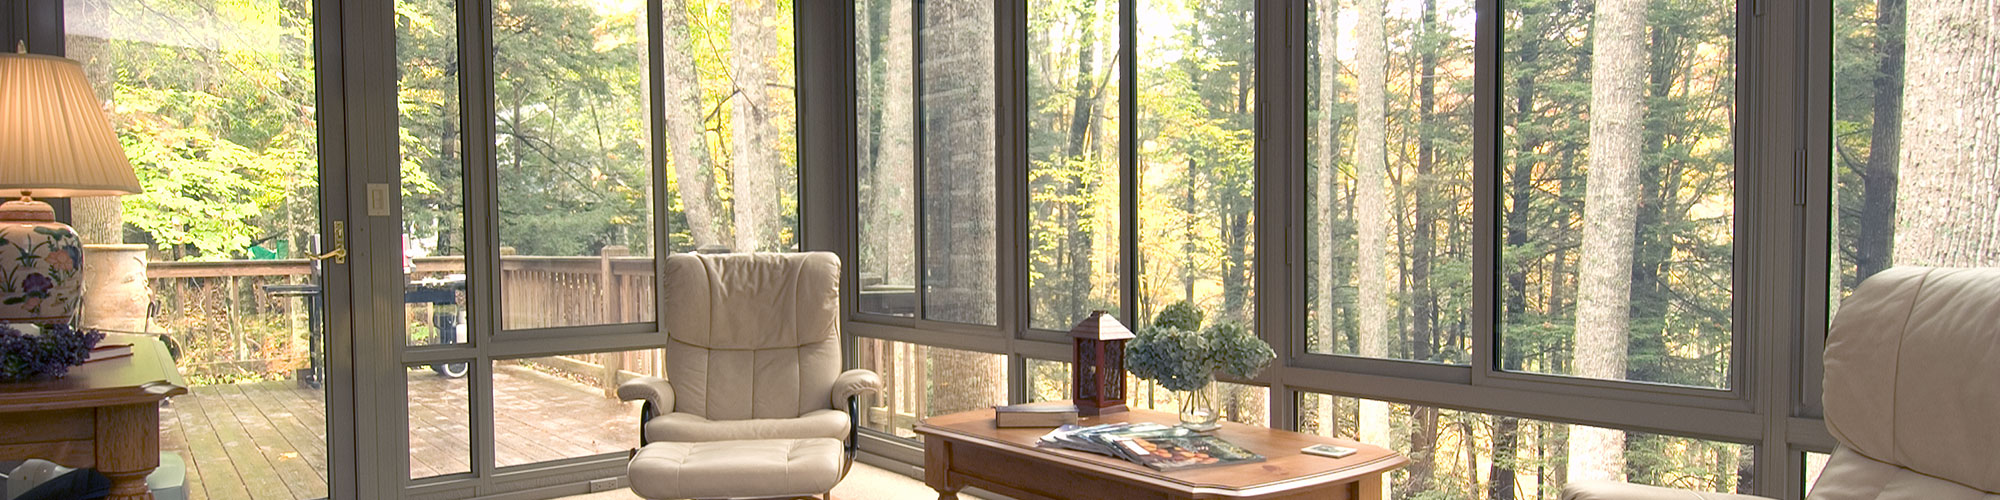 Sunroom glass weatherseal sunrooms and home solutions for Glass block r value